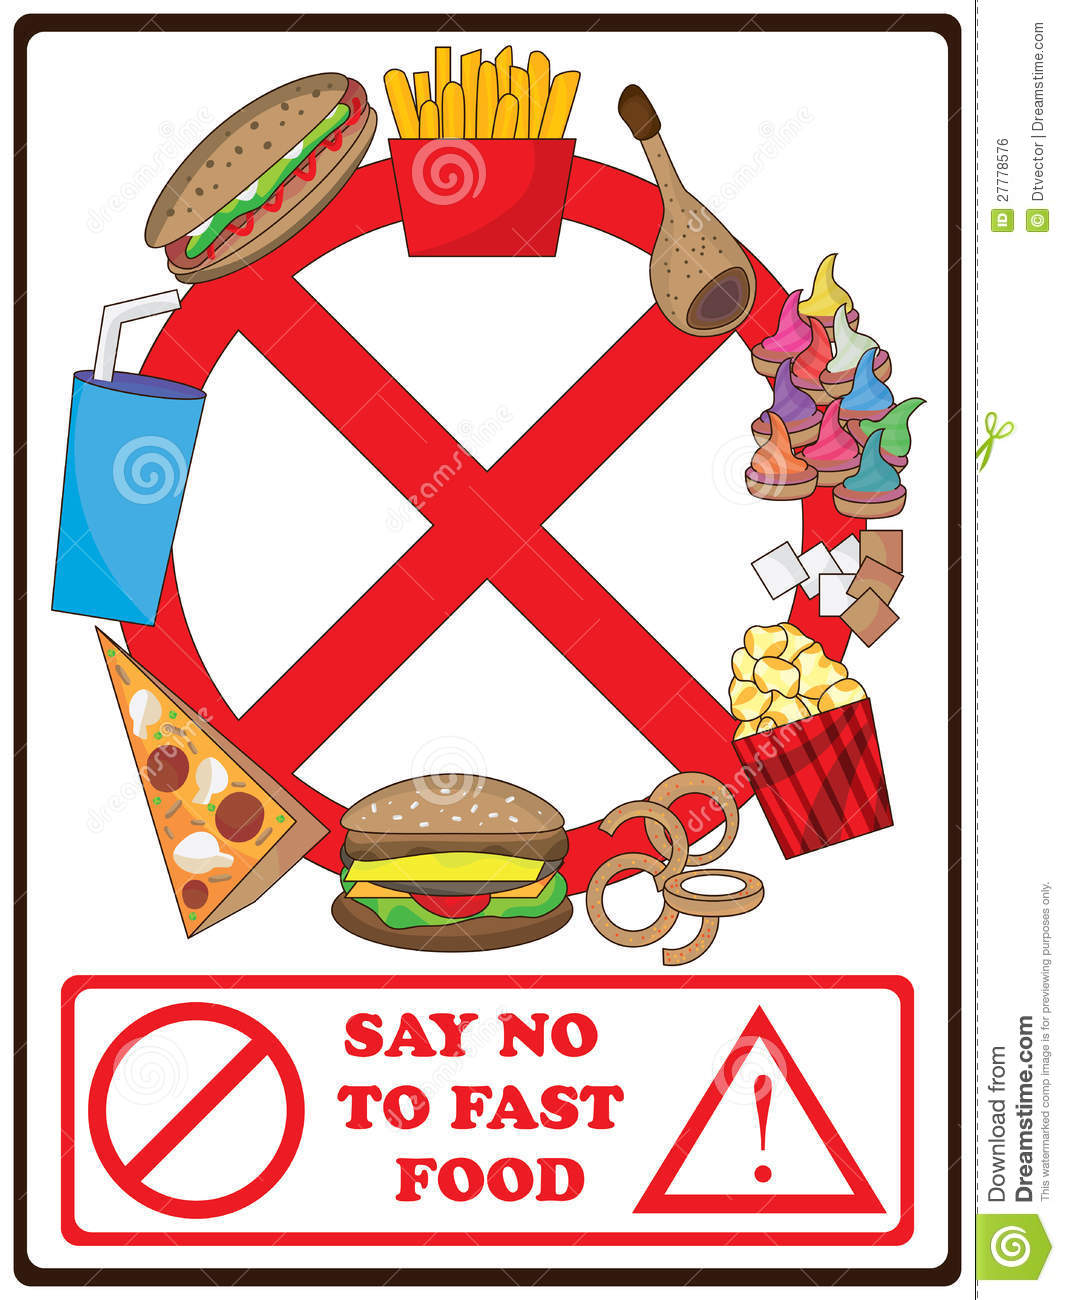 Clipart No Fast Food.